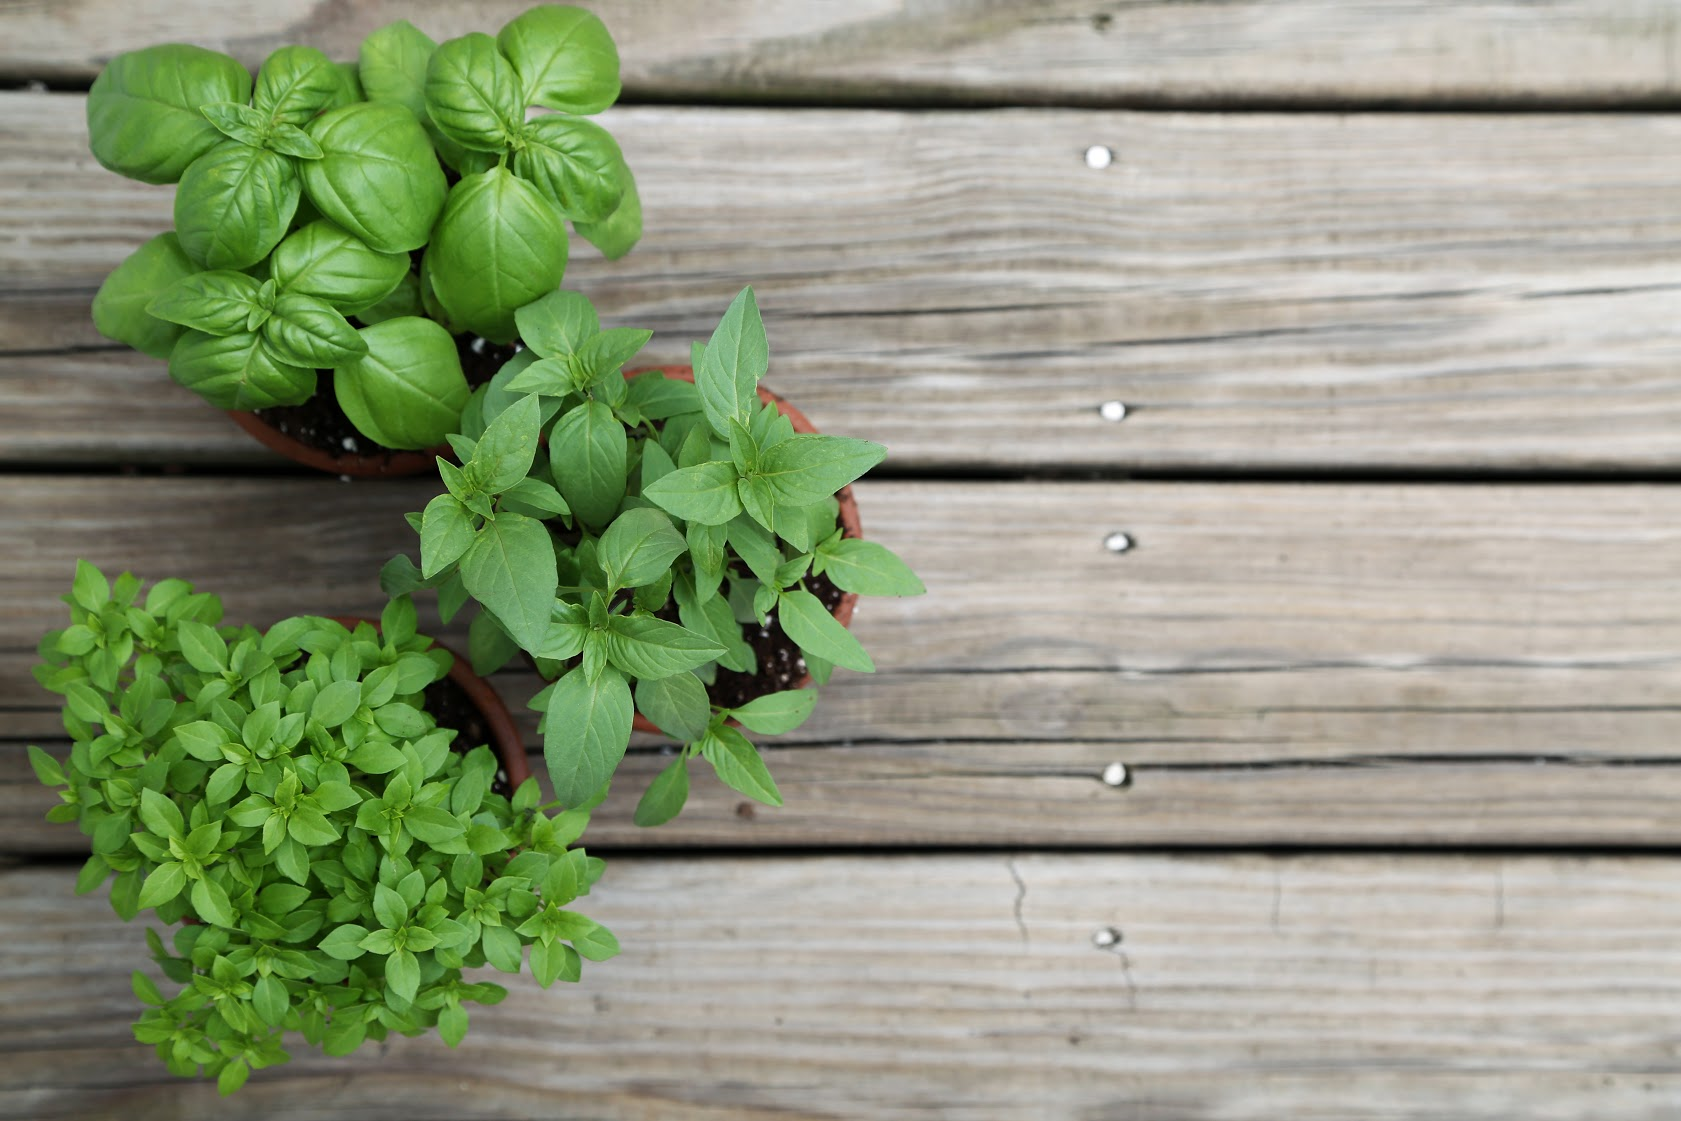 snack, Flavor Up Your Family's Snacks with Herbs and Spices